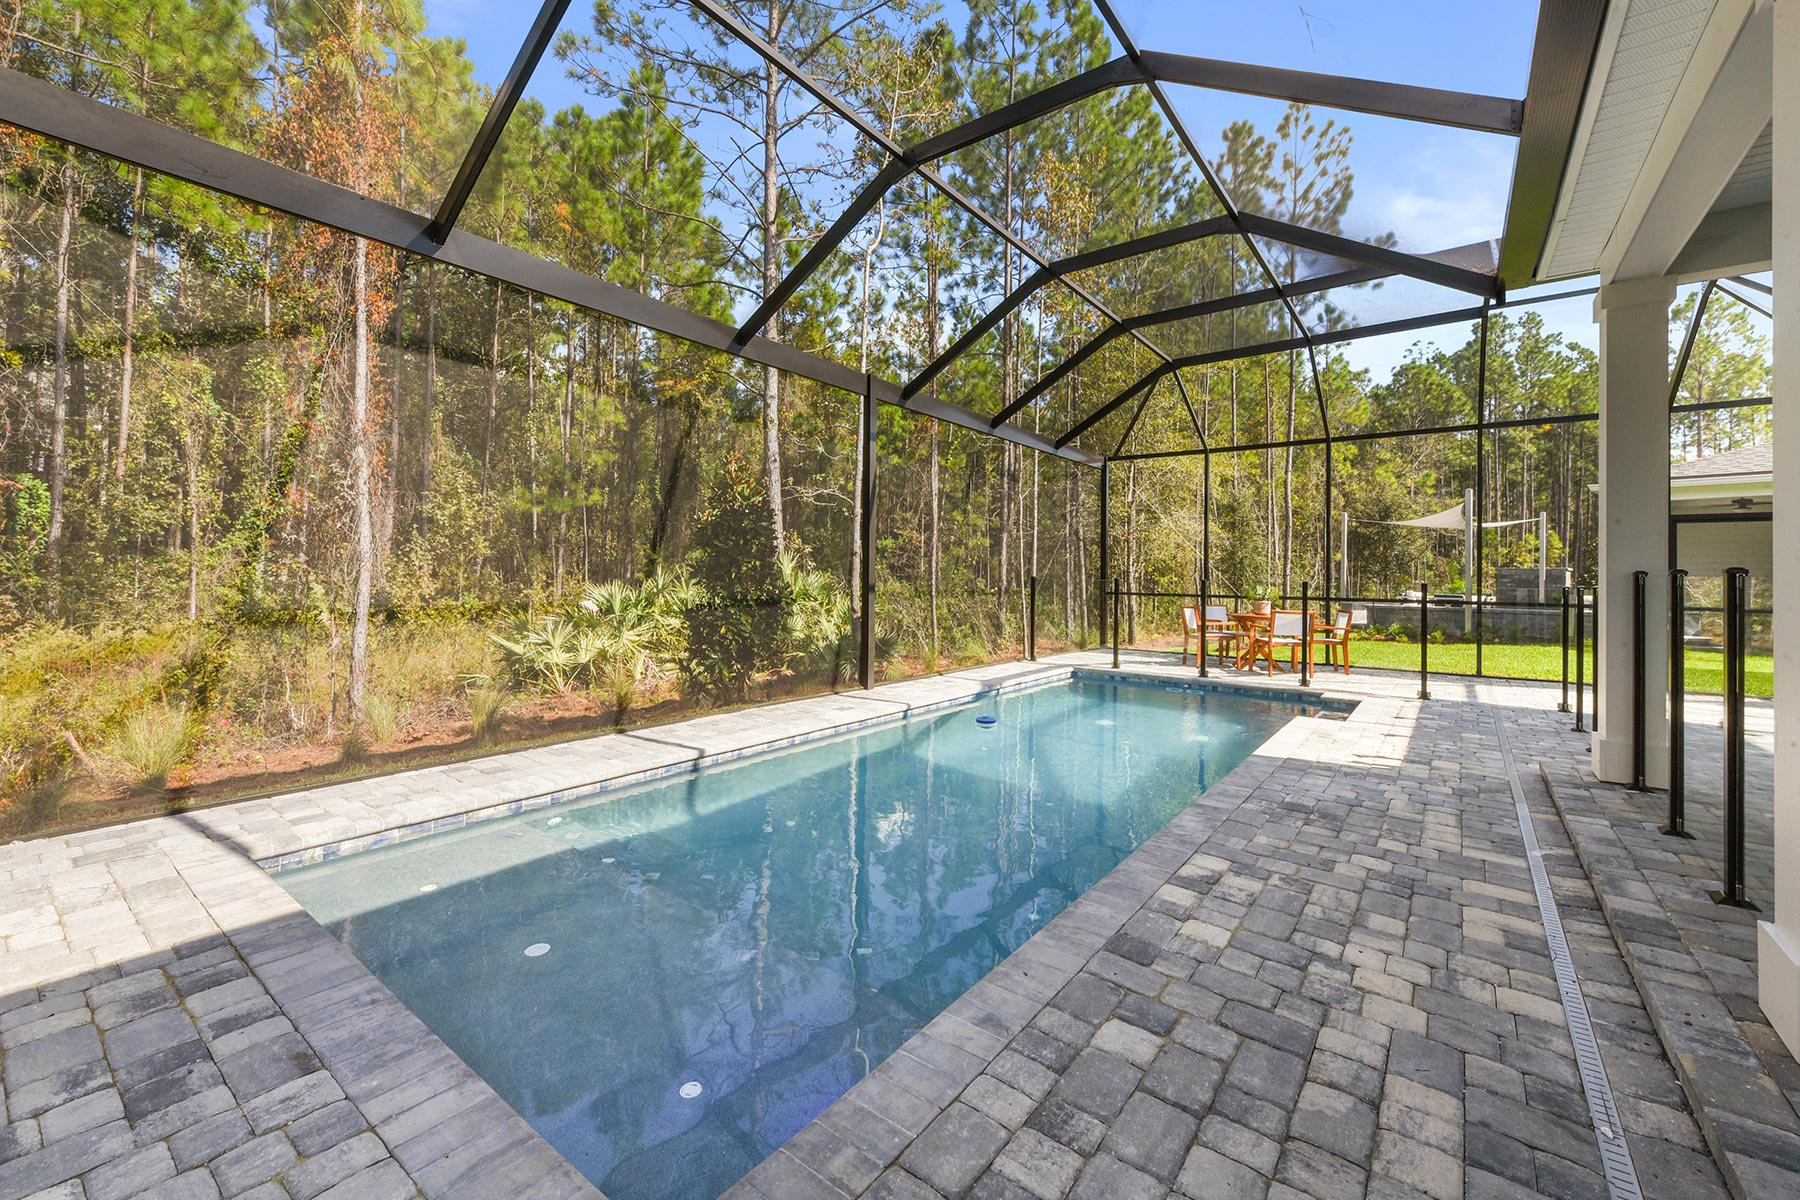 Court Plan WaterFeatures at RiverTown - WaterSong in St. Johns Florida by Mattamy Homes